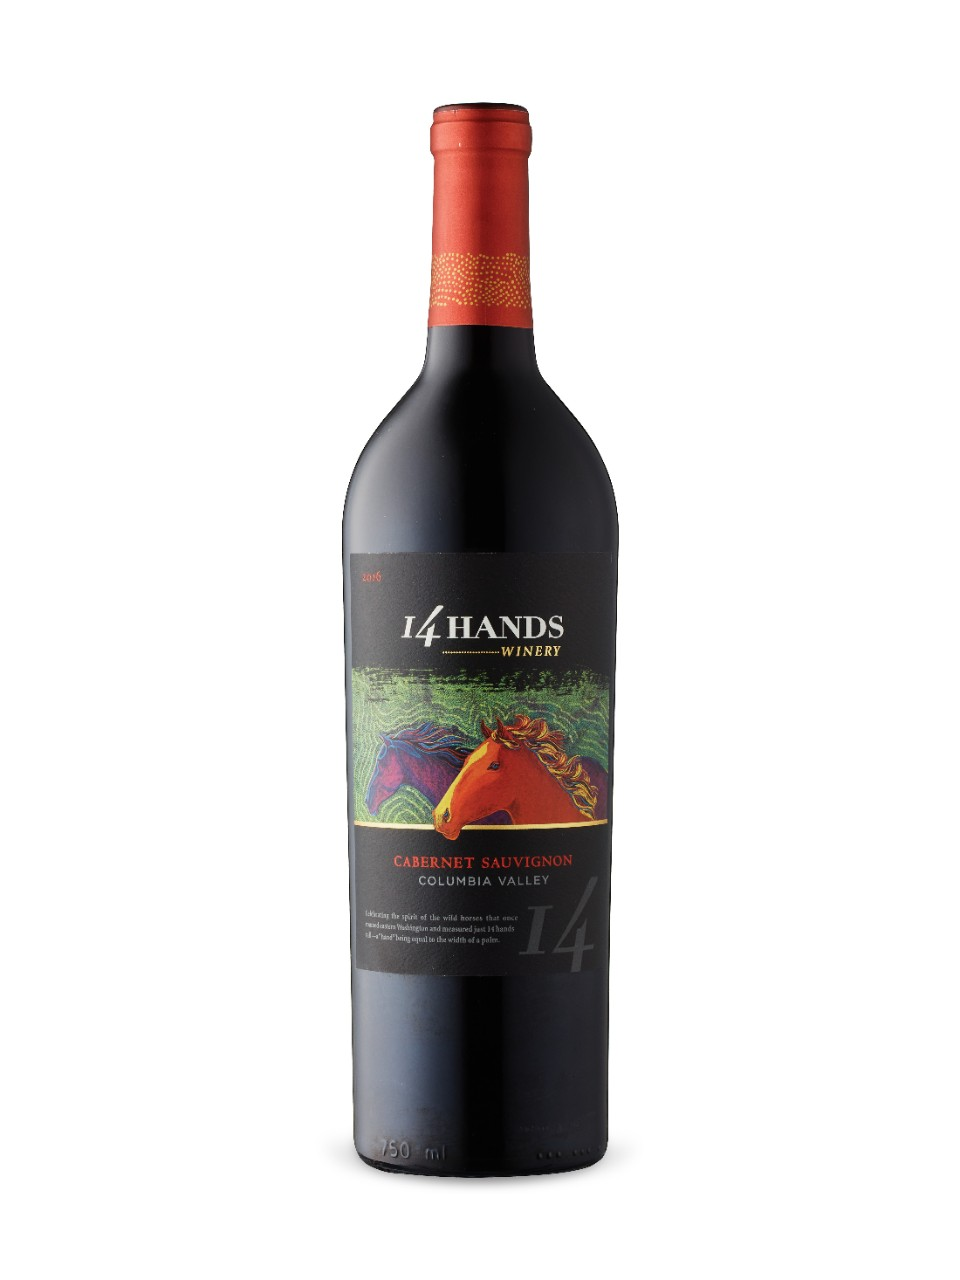 Image for 14 Hands Winery Cabernet Sauvignon 2016 from LCBO